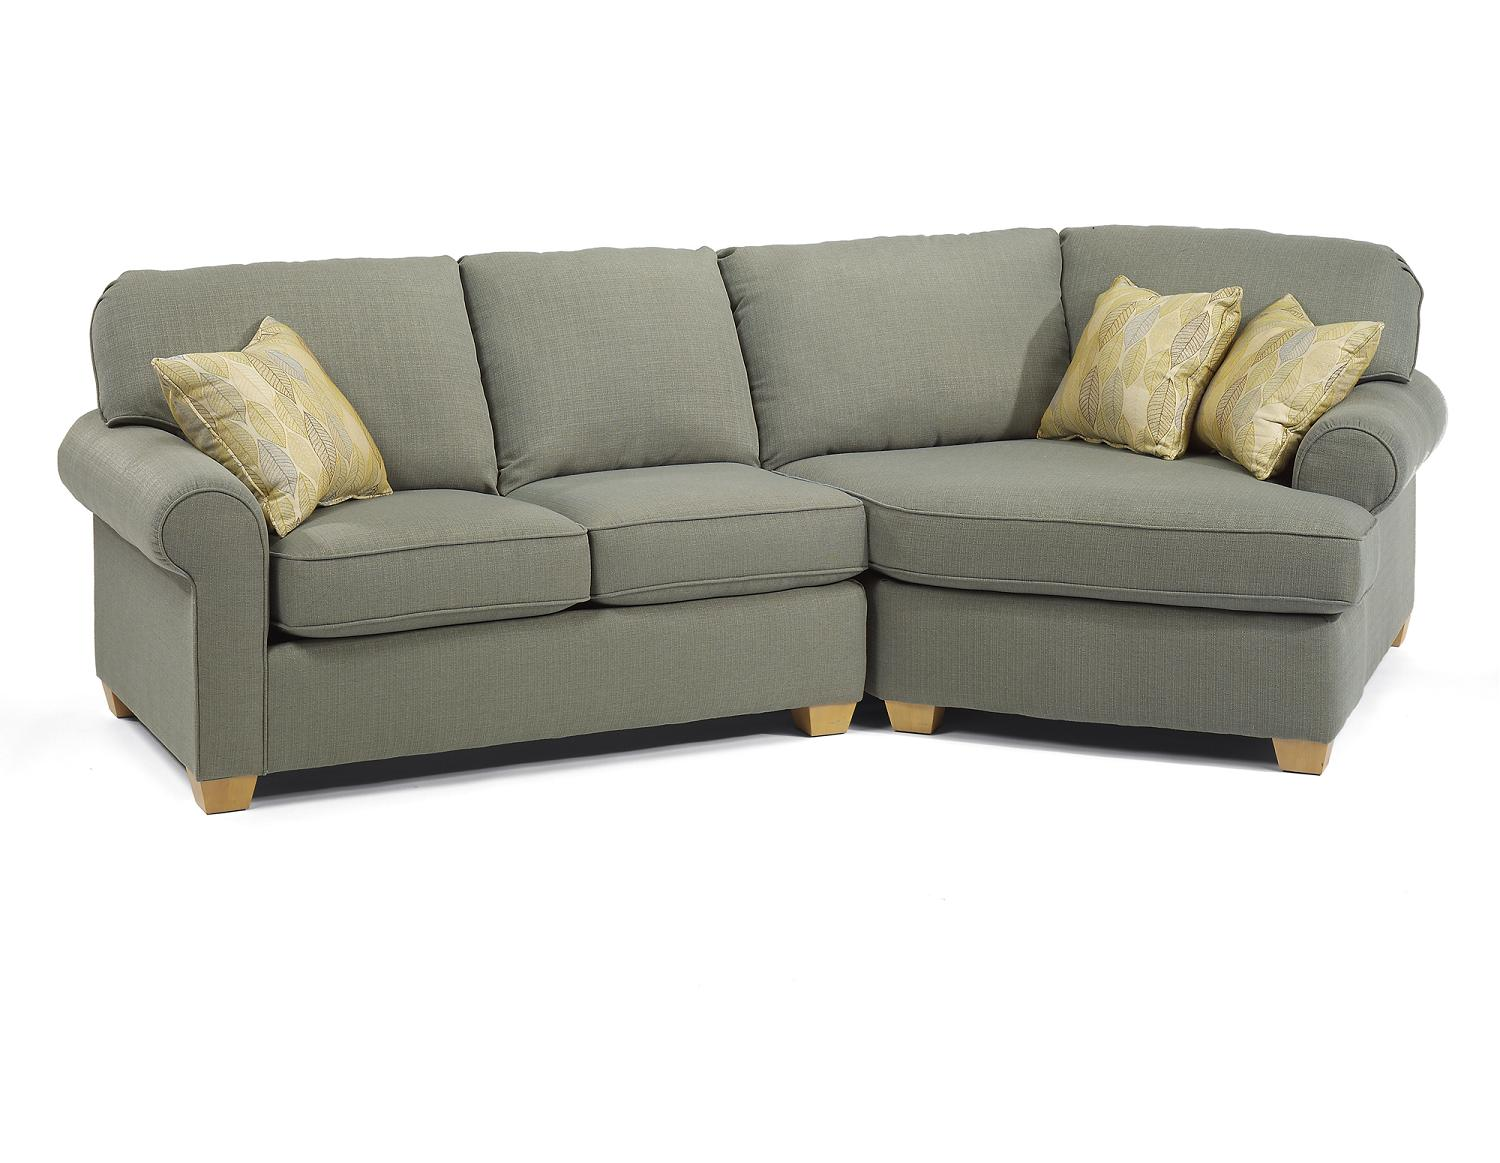 Cheap sectional sofas under 100 couch sofa ideas for Chaise lounge cheap uk